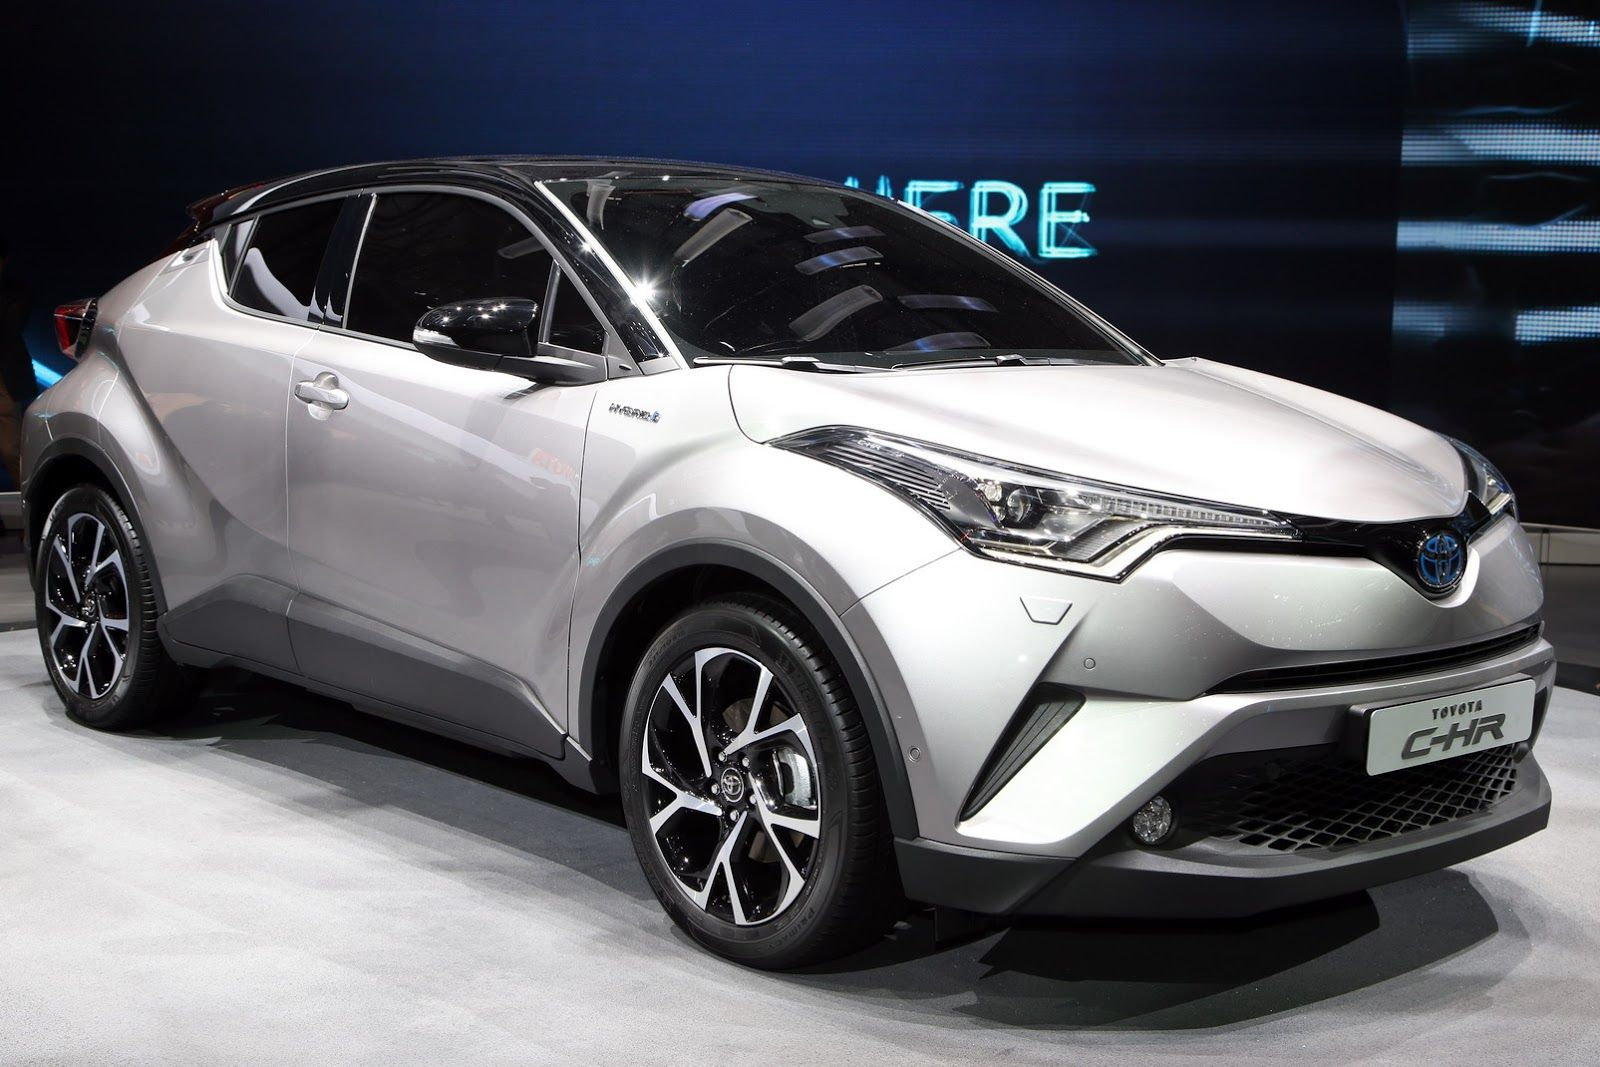 toyota is infiltrating the subcompact crossover segment with